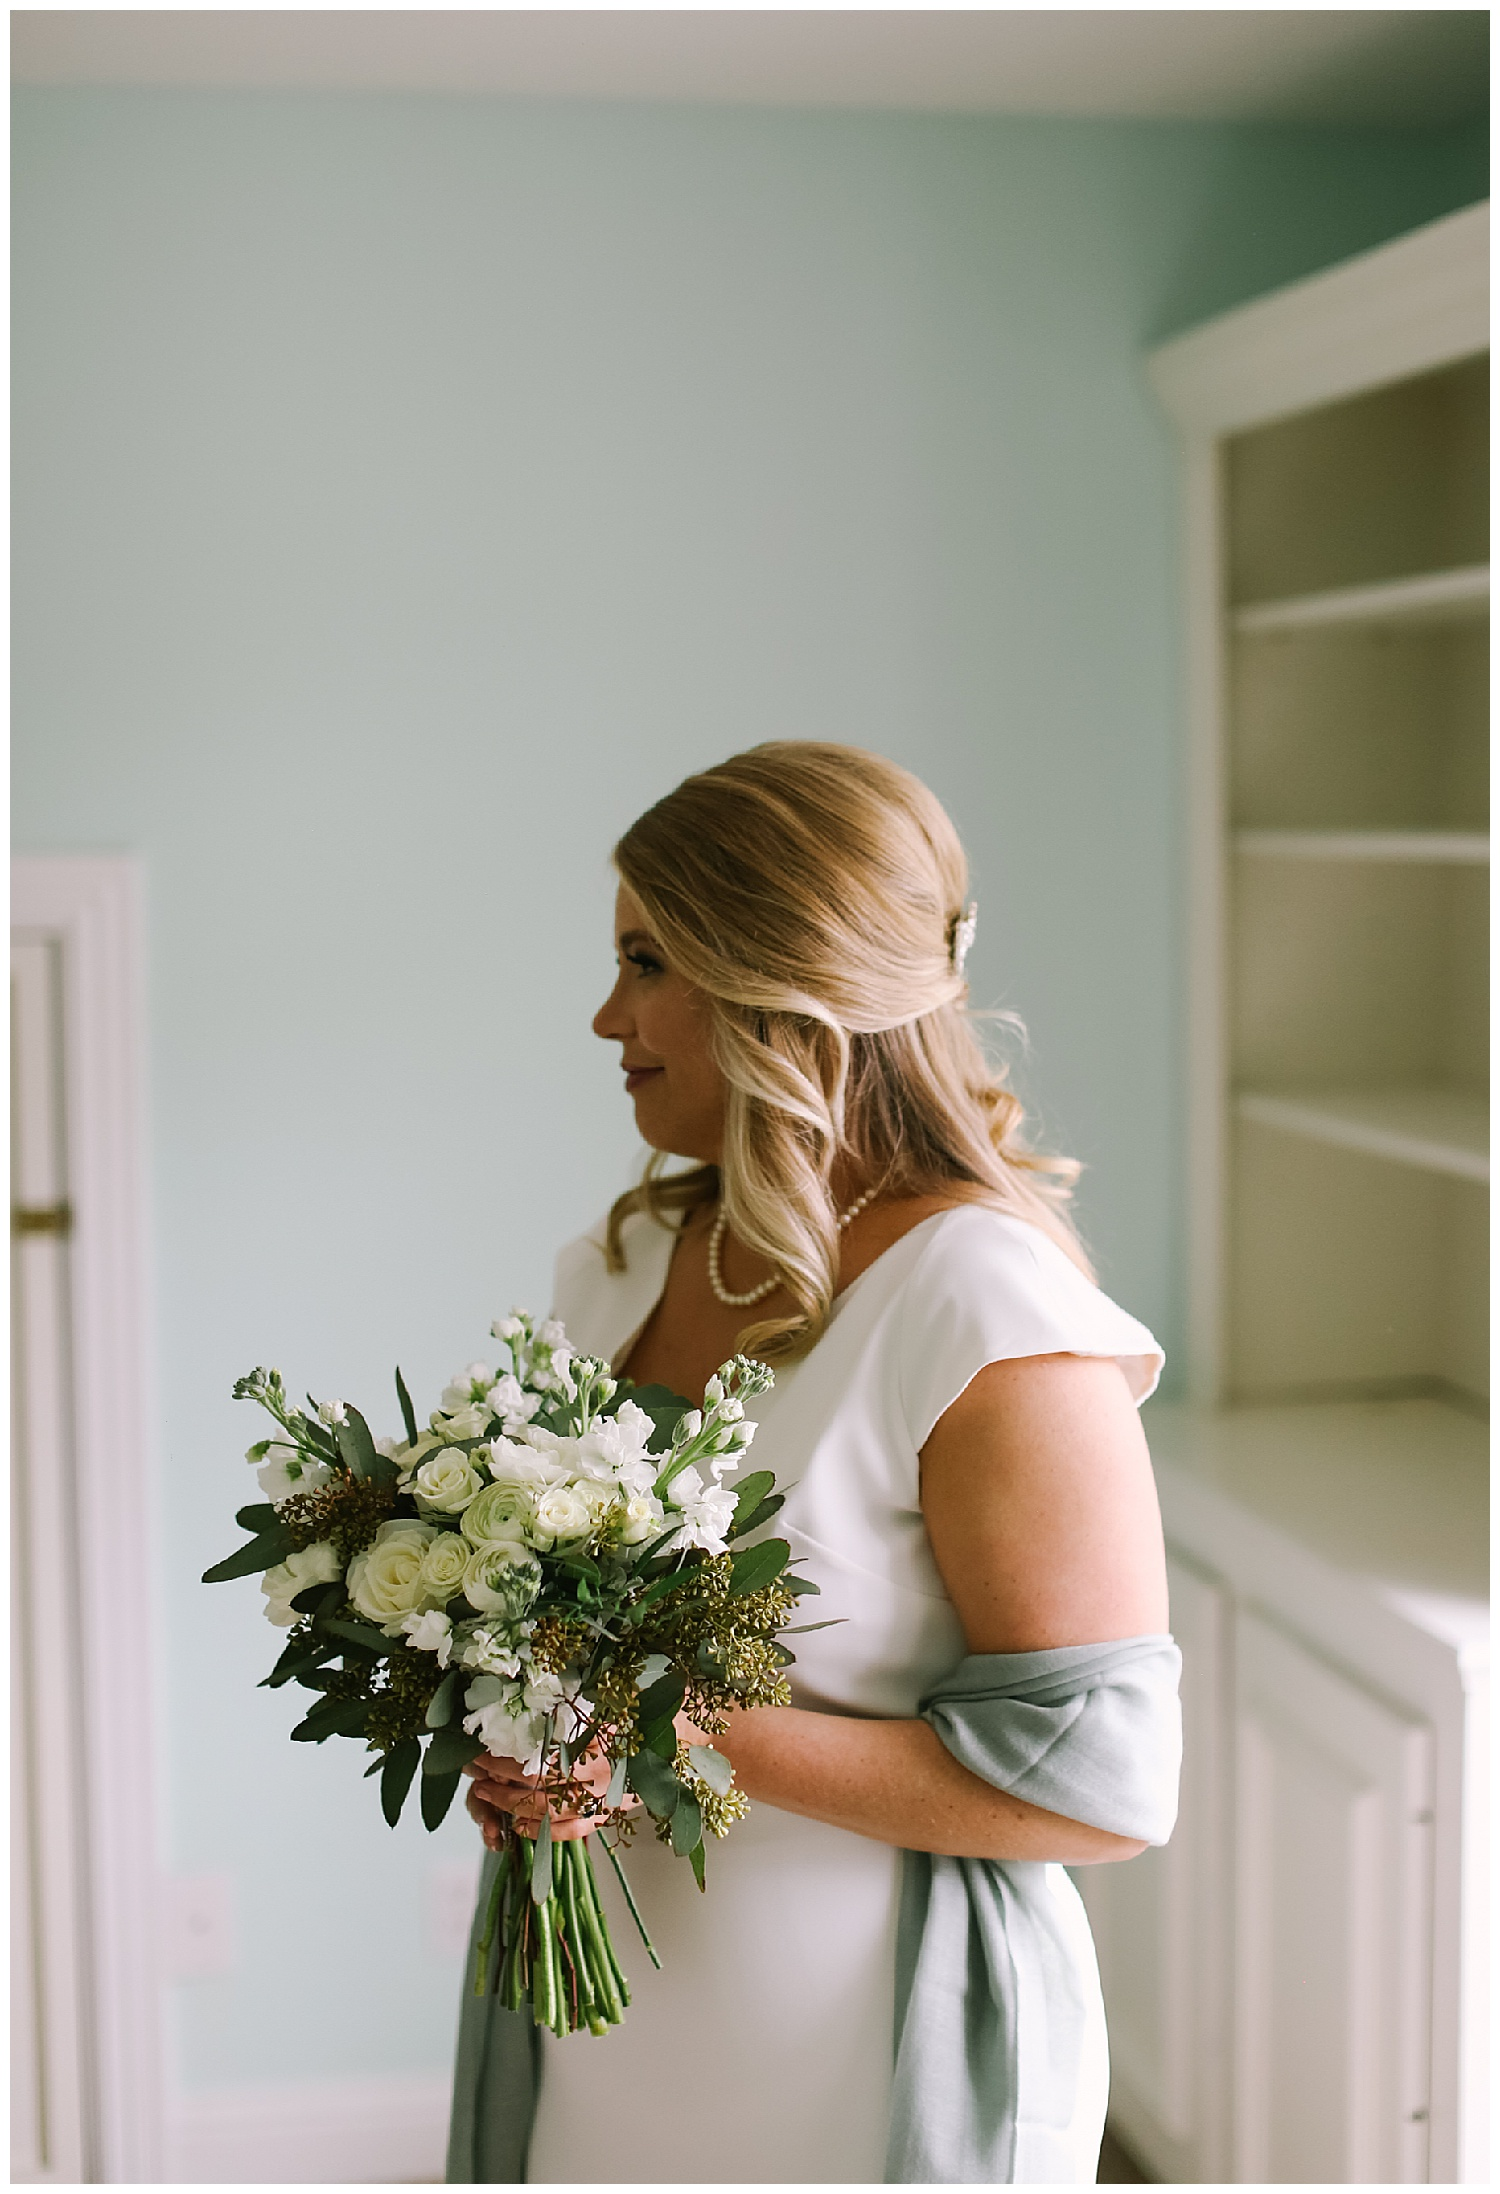 trent.and.kendra.photography.elopement.intimate.wedding-32.jpg